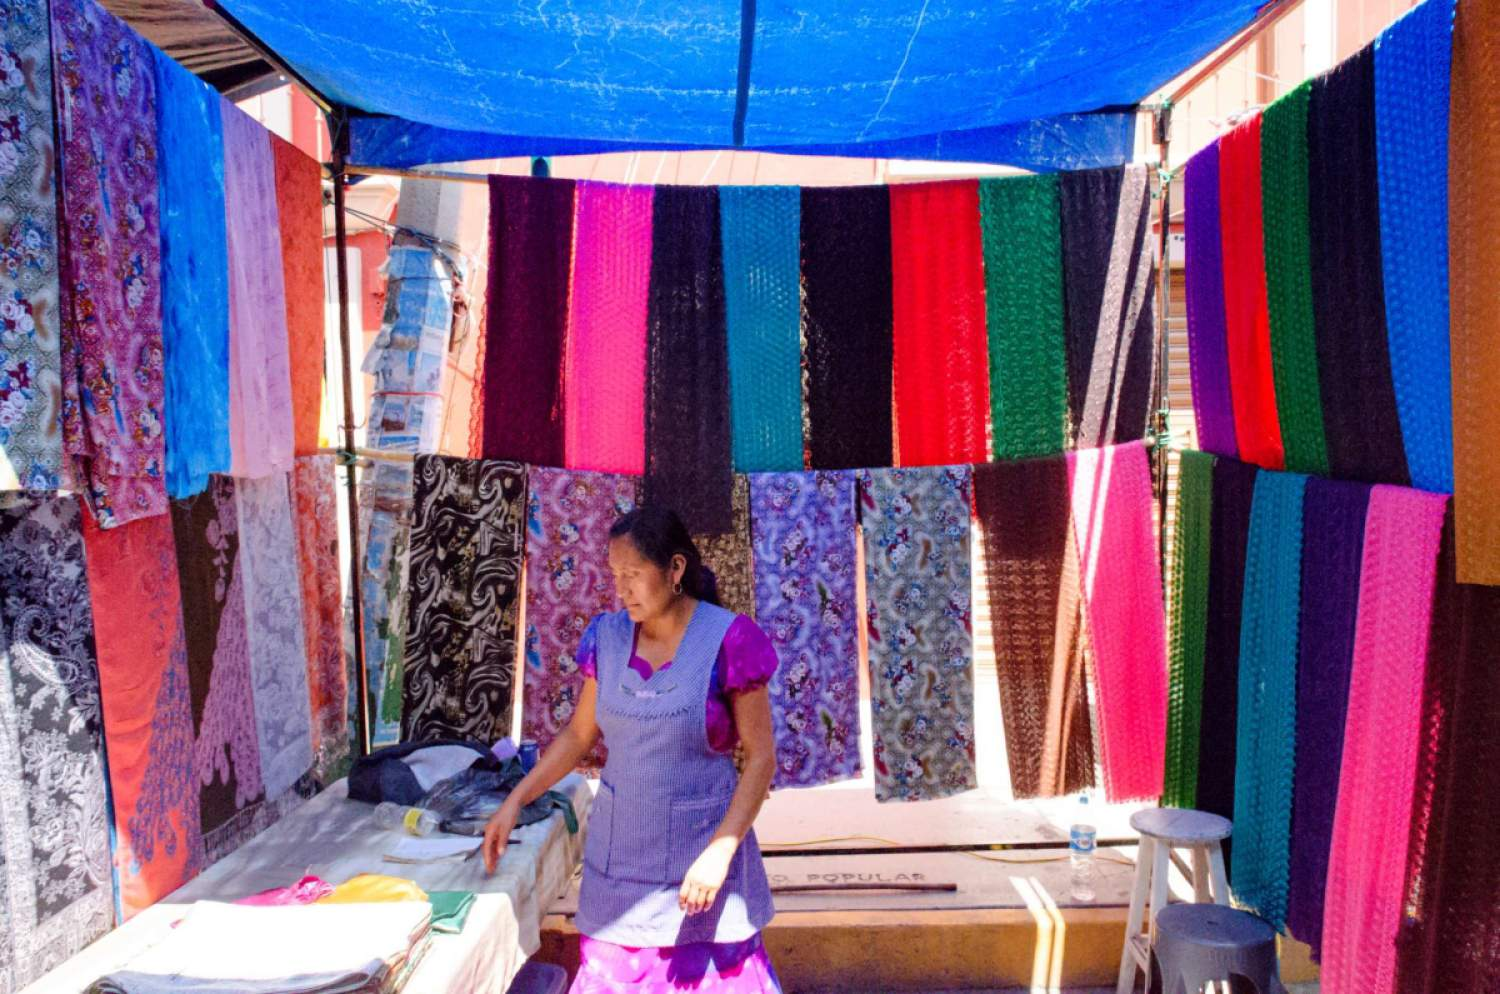 The market of Tlacolula de Matamoros, Oaxaca